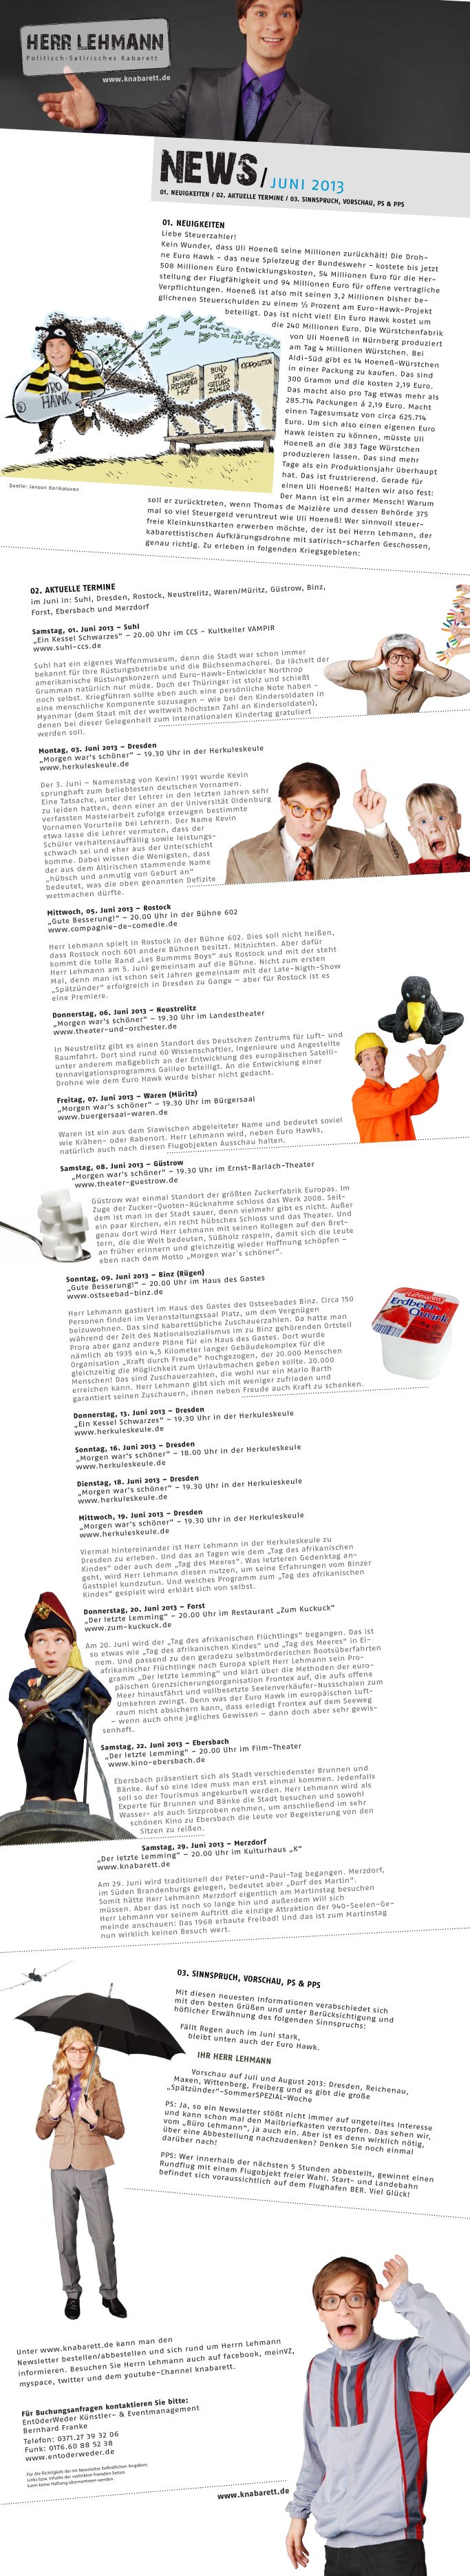 newsletter_juni_2013_internetversion.jpg